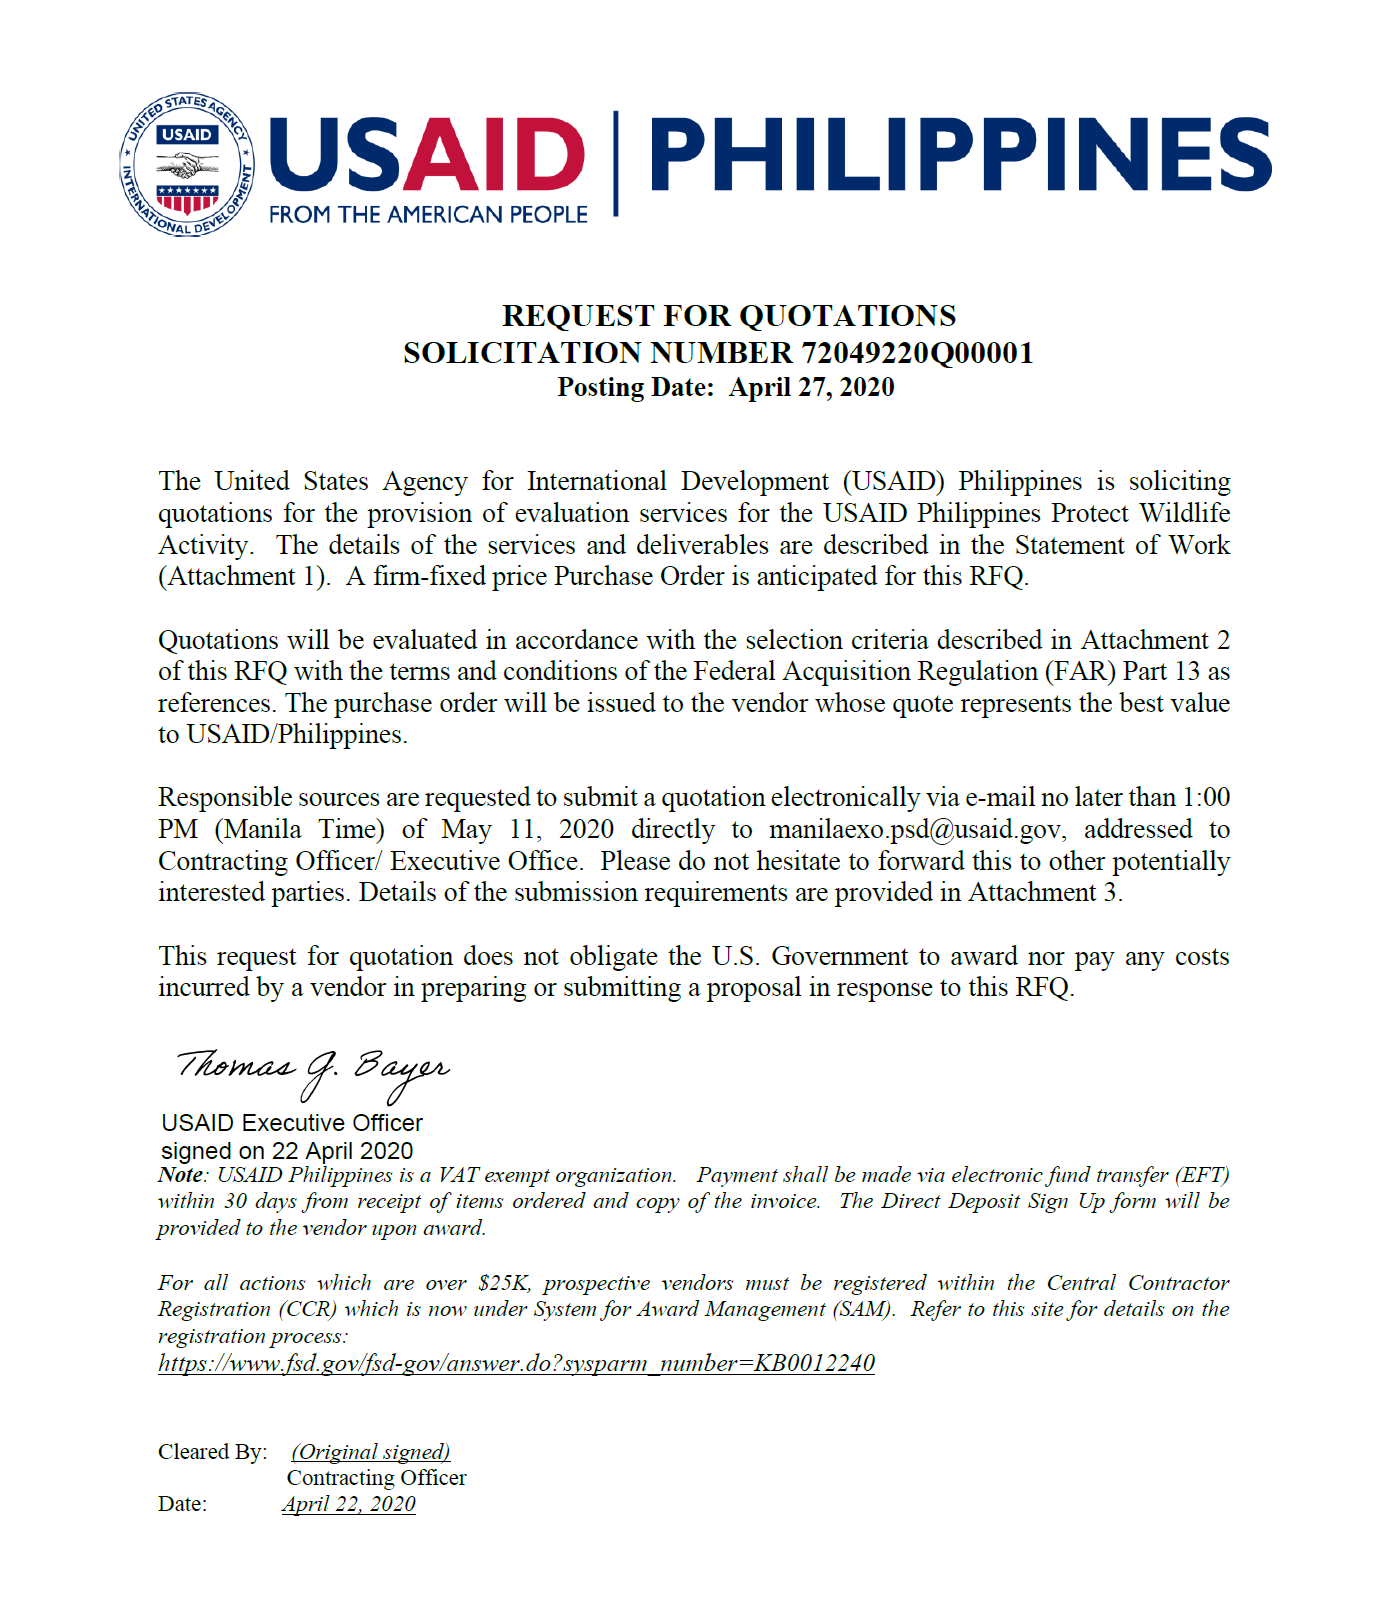 Request for Quotation: Evaluation Services for the USAID/Philippines Protect Wildlife Activity